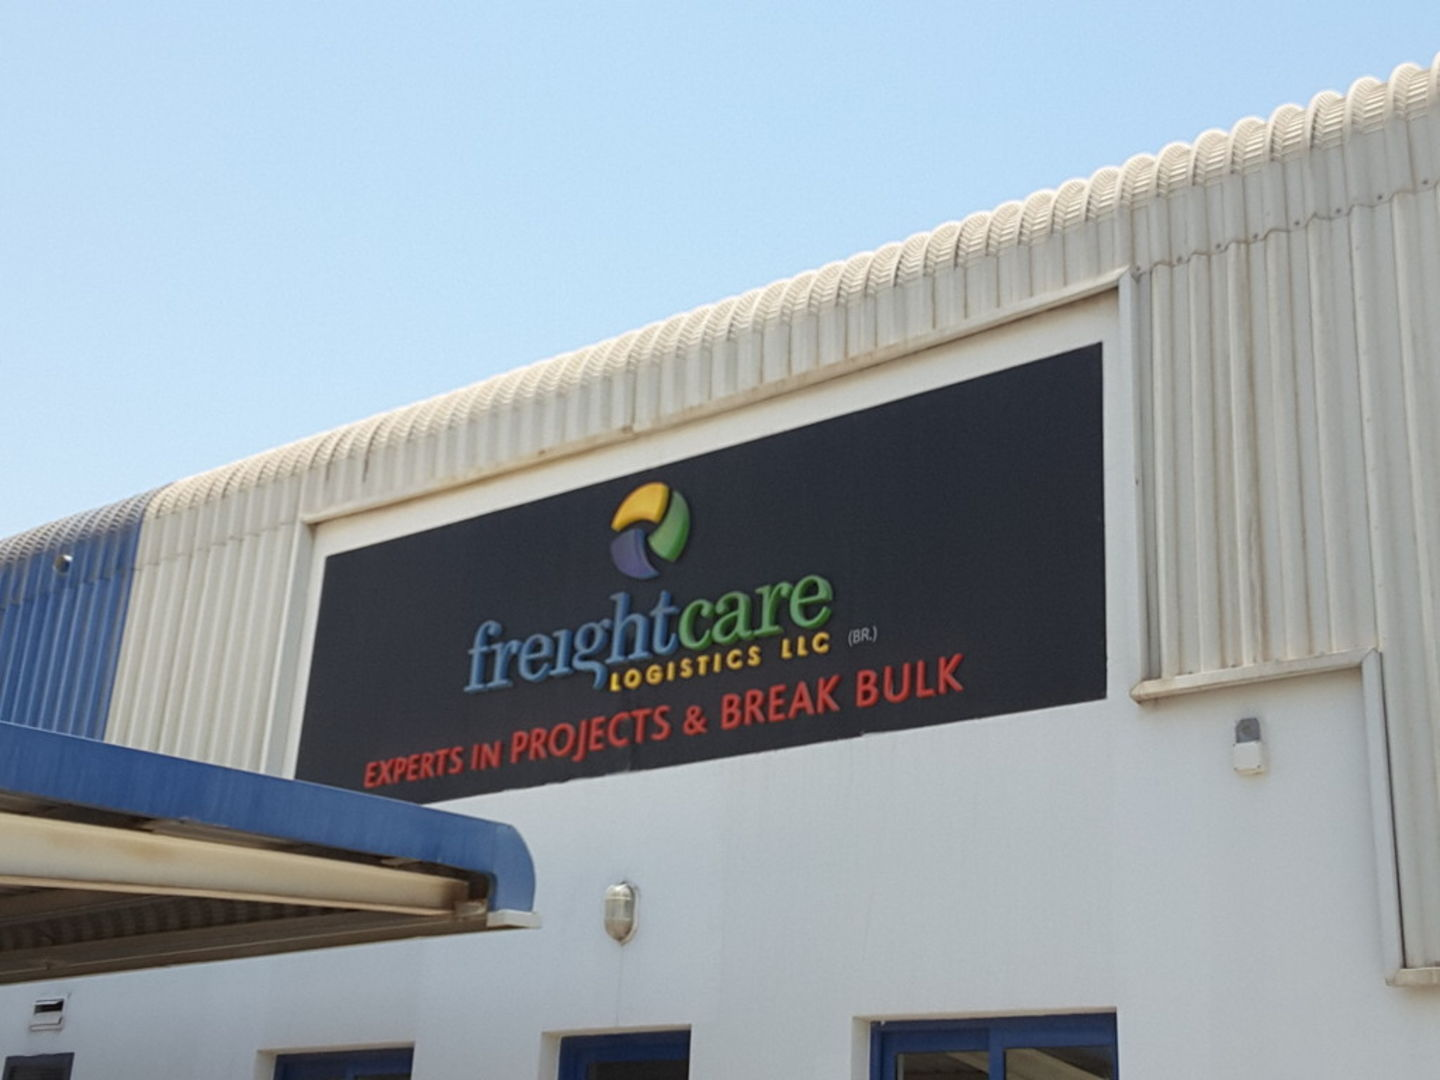 Freight Care Logistics, (Distribution Services) in Jebel Ali Free